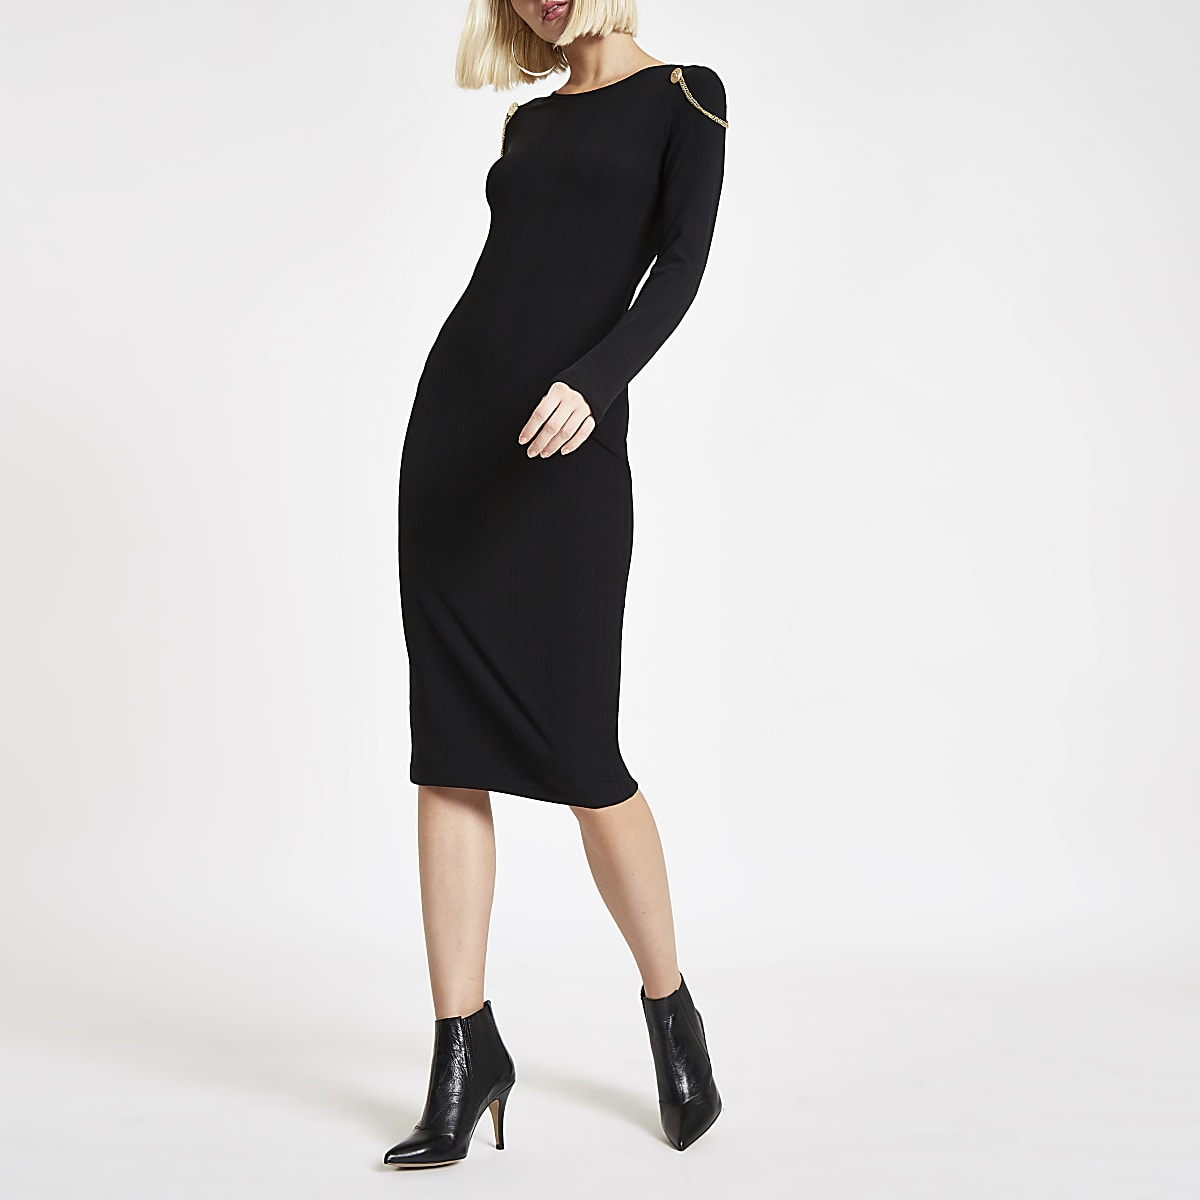 Black chain drape bodycon midi dress